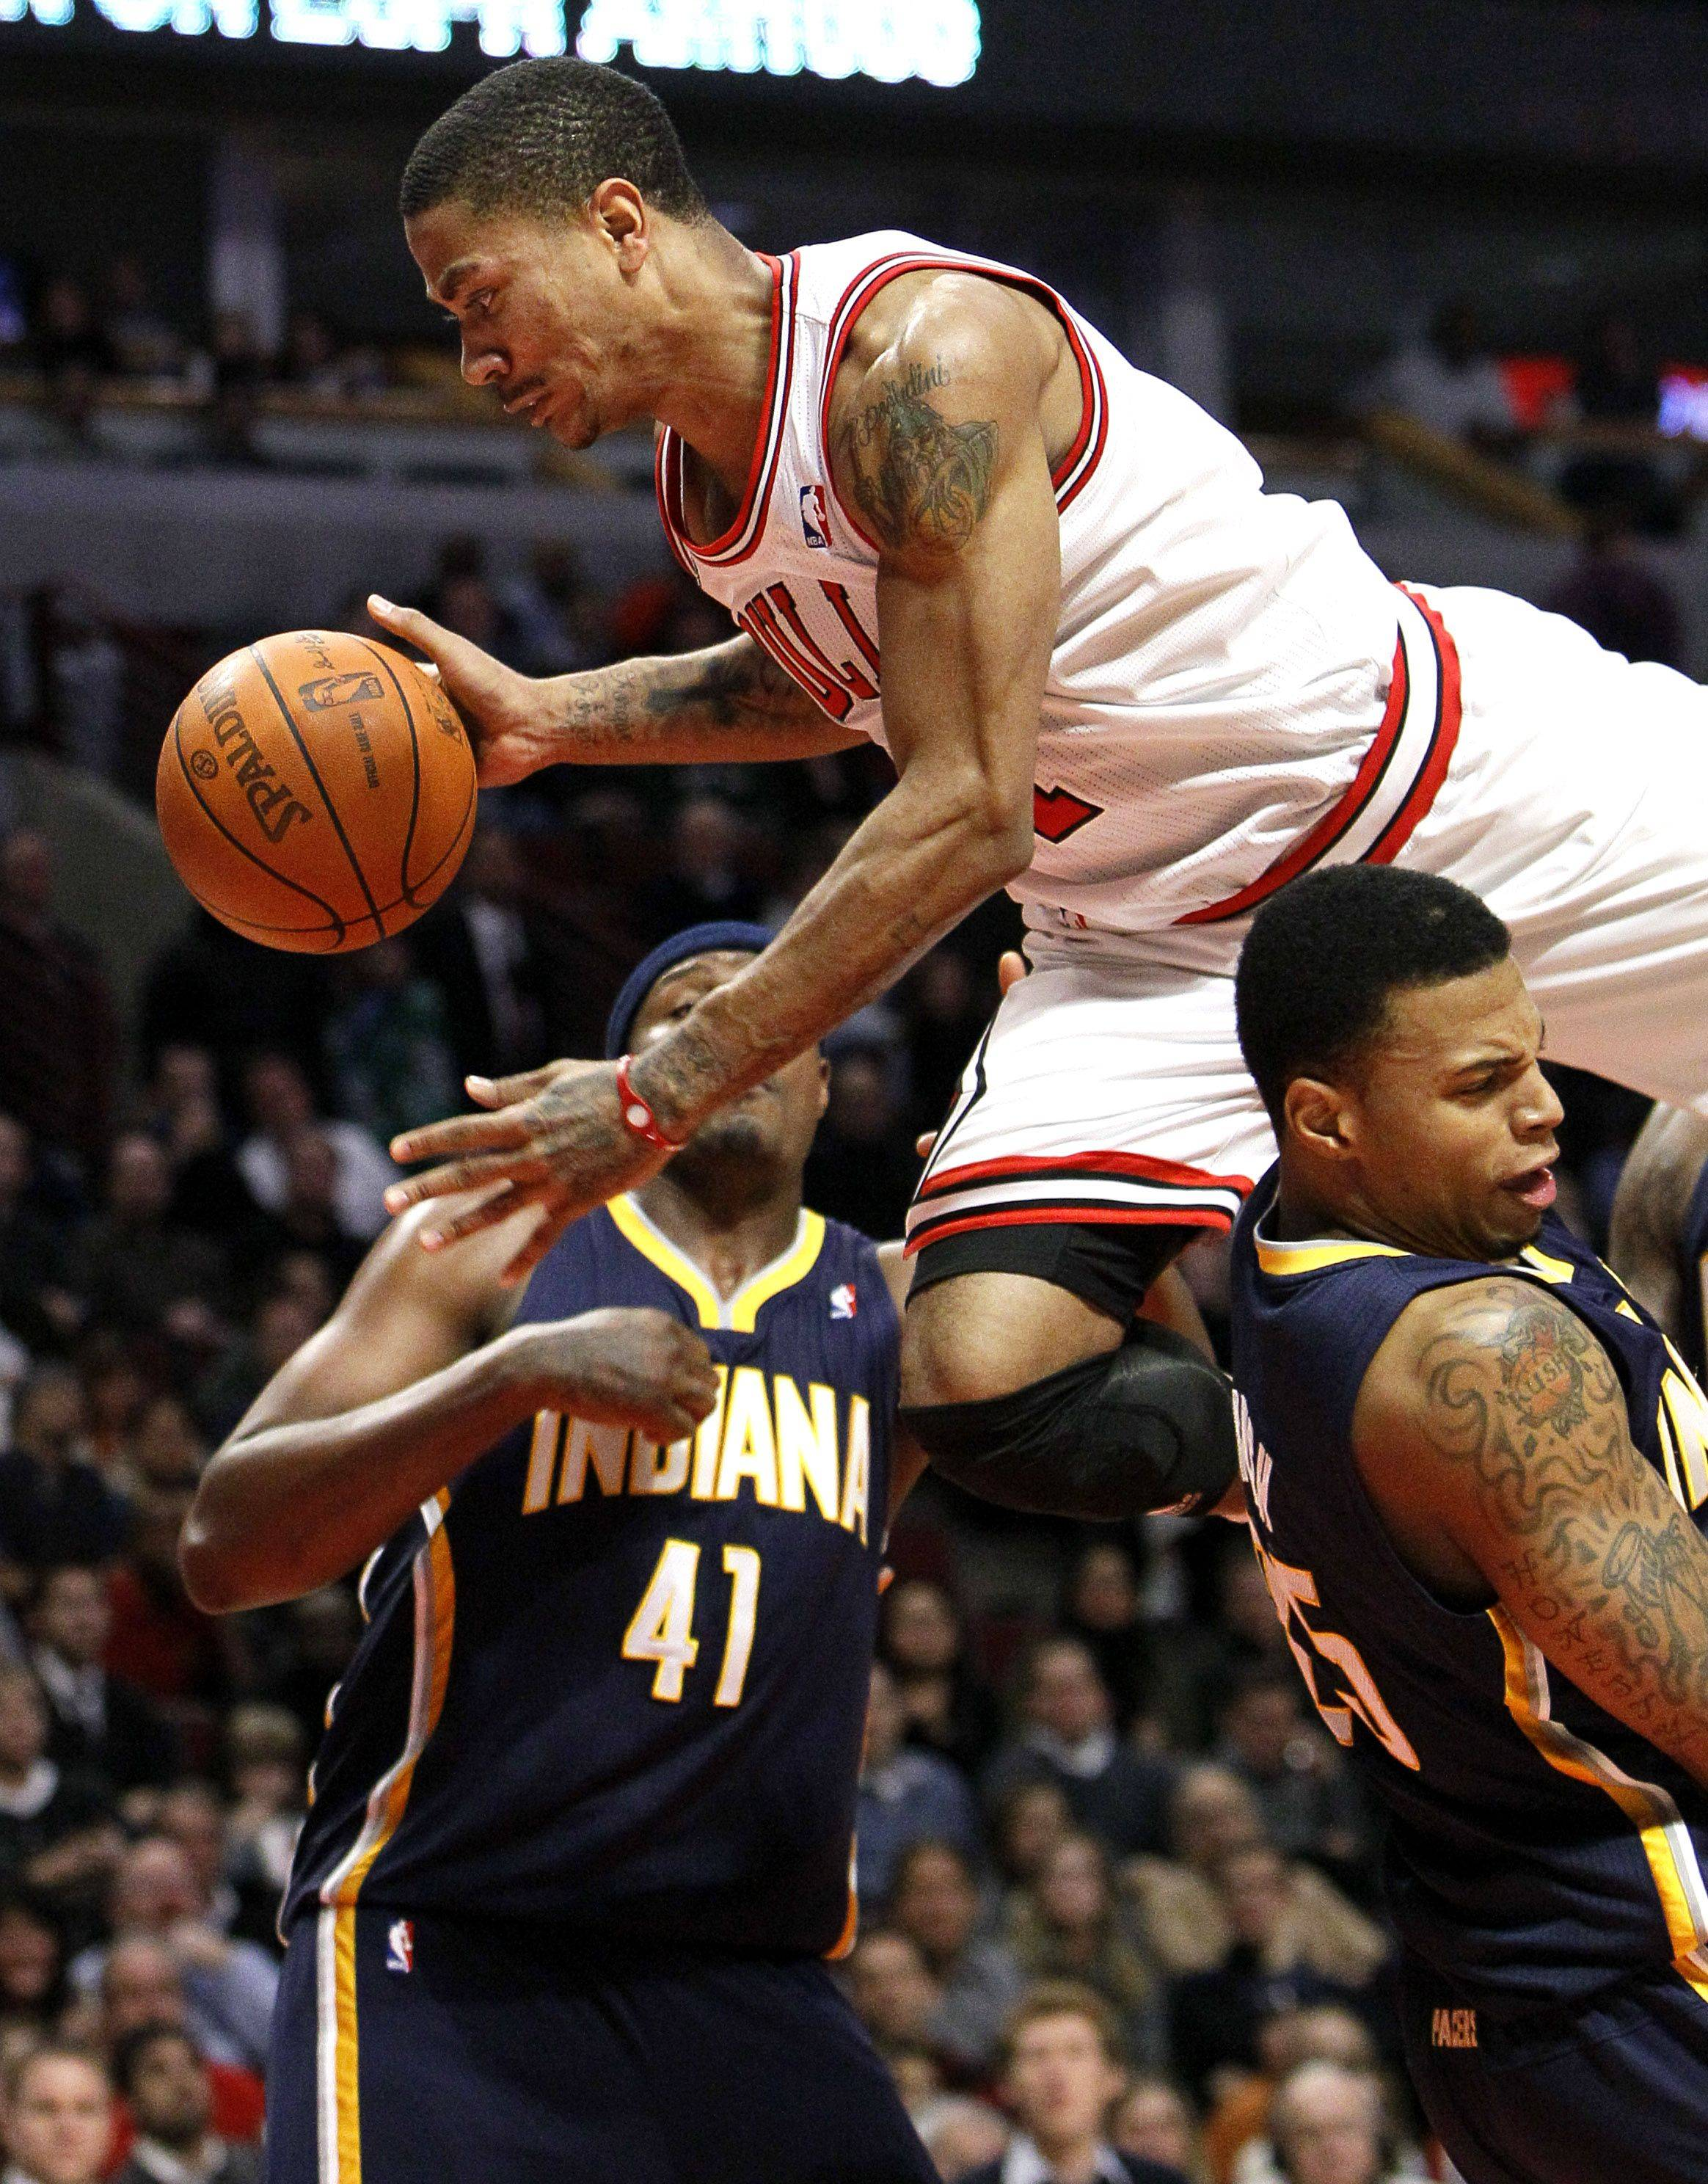 Bulls point guard Derrick Rose falls over Indiana Pacers shooting guard Brandon Rush as forward James Posey watches on Monday. Rose said he's sore but expects to play Wednesday against Toronto.